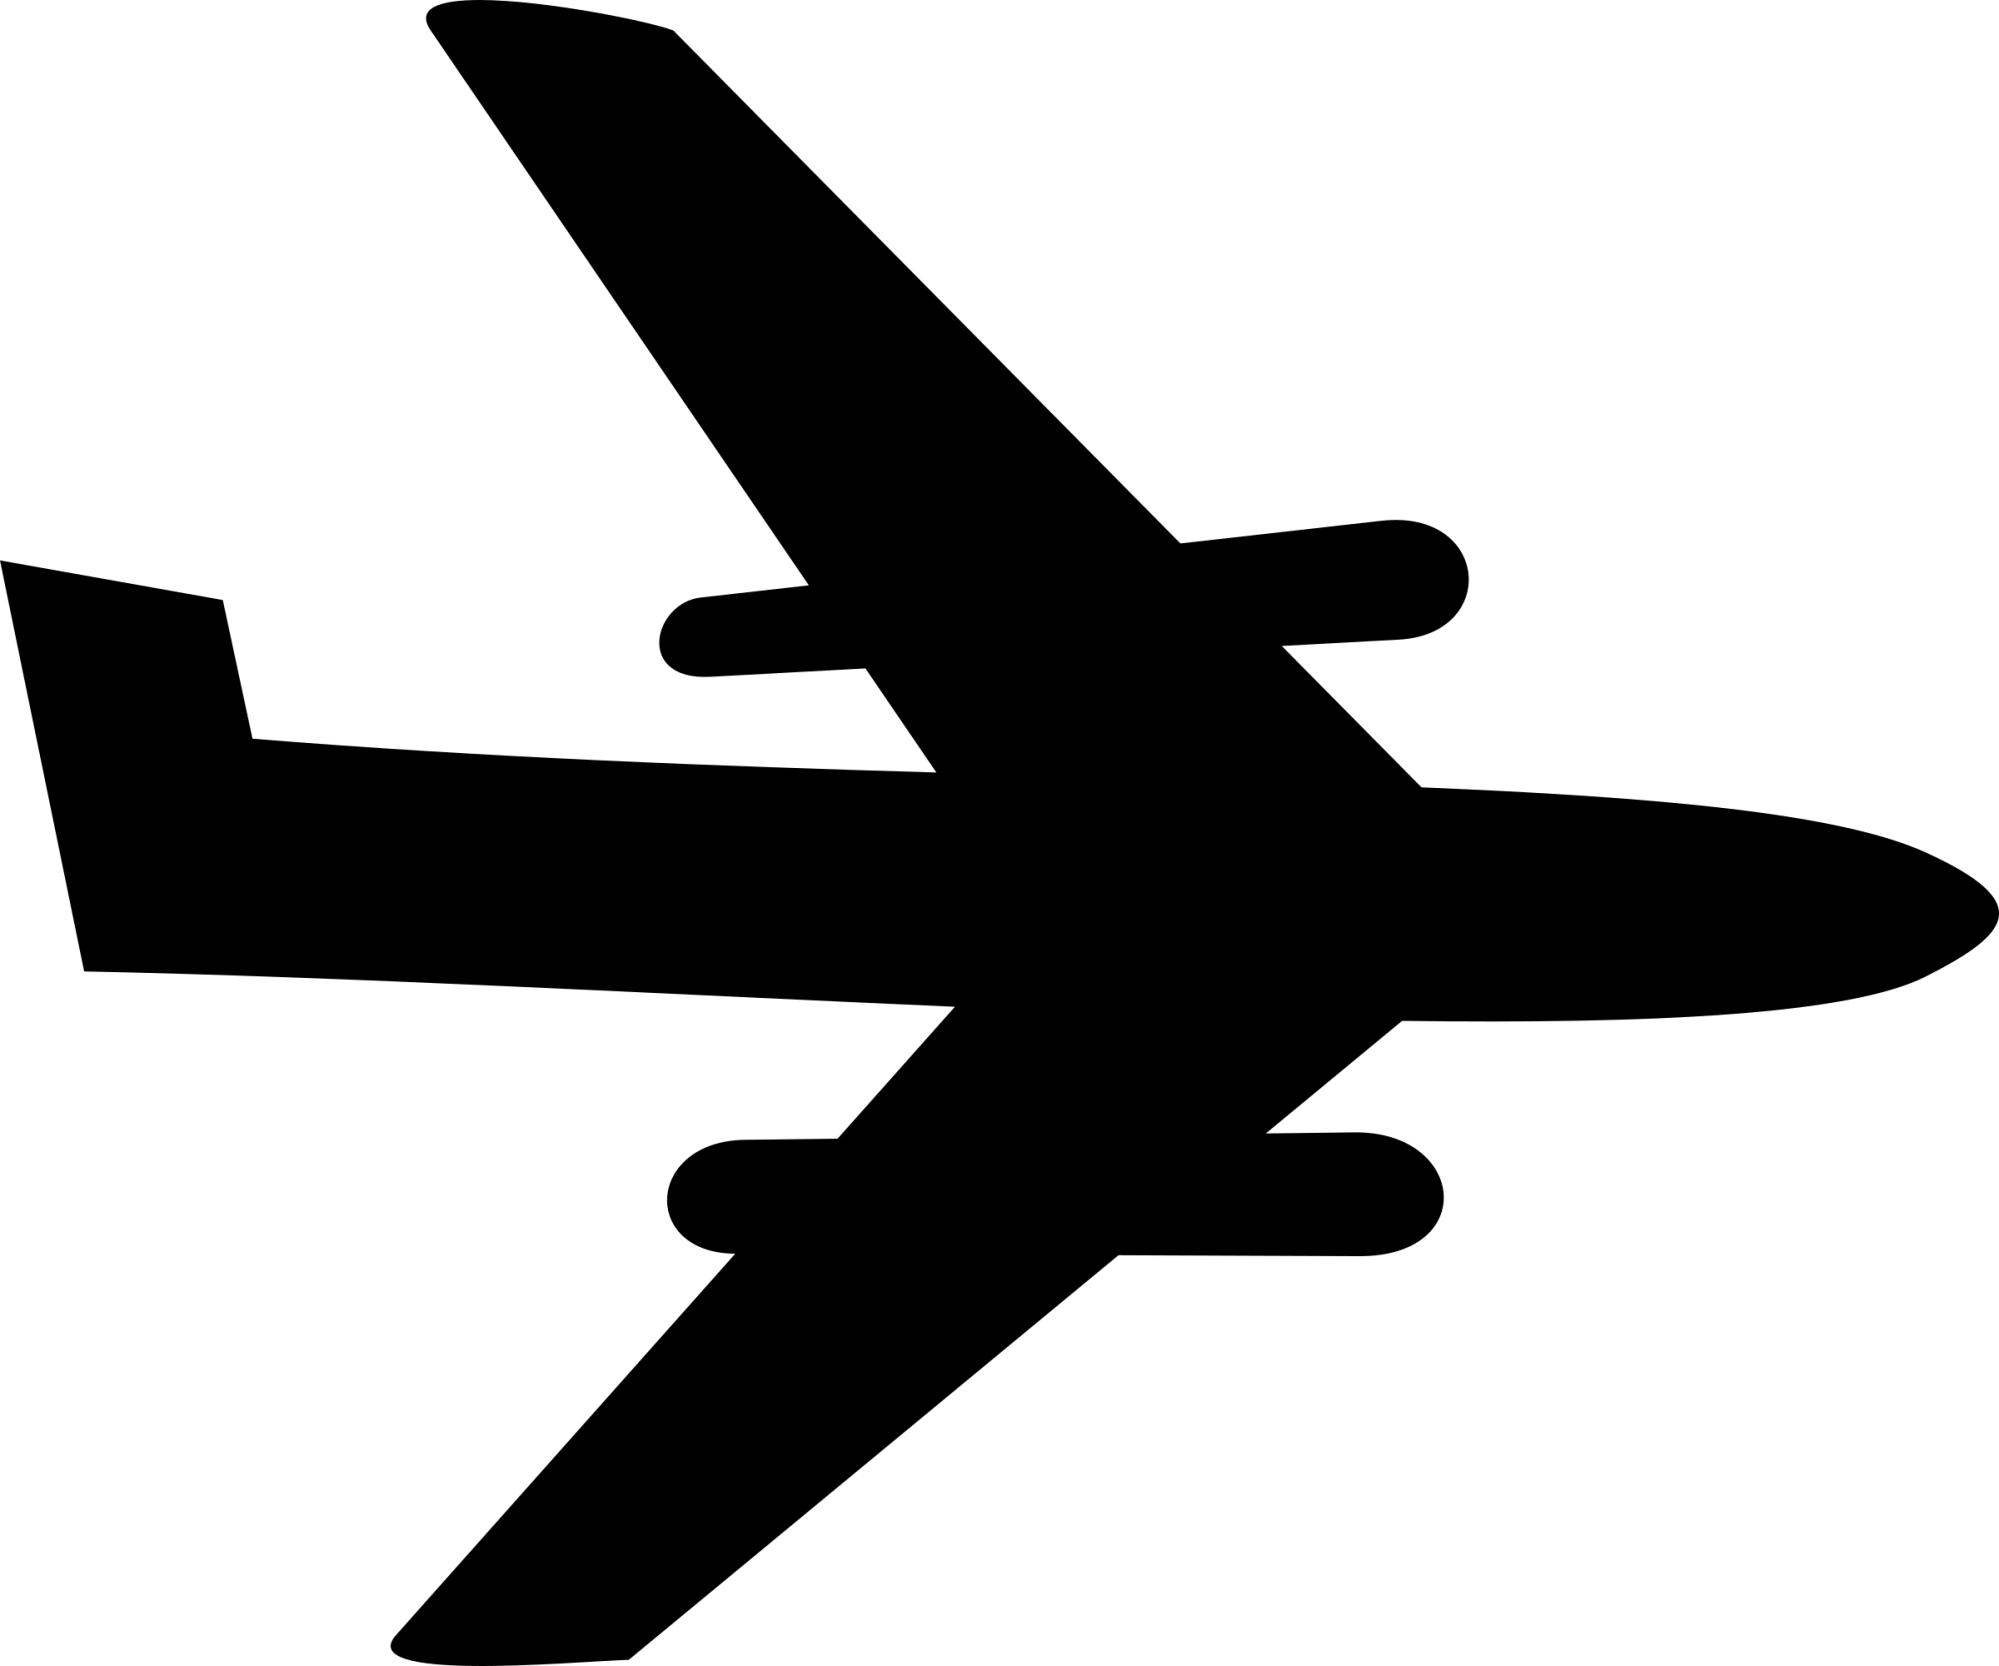 hight resolution of airplane big image png